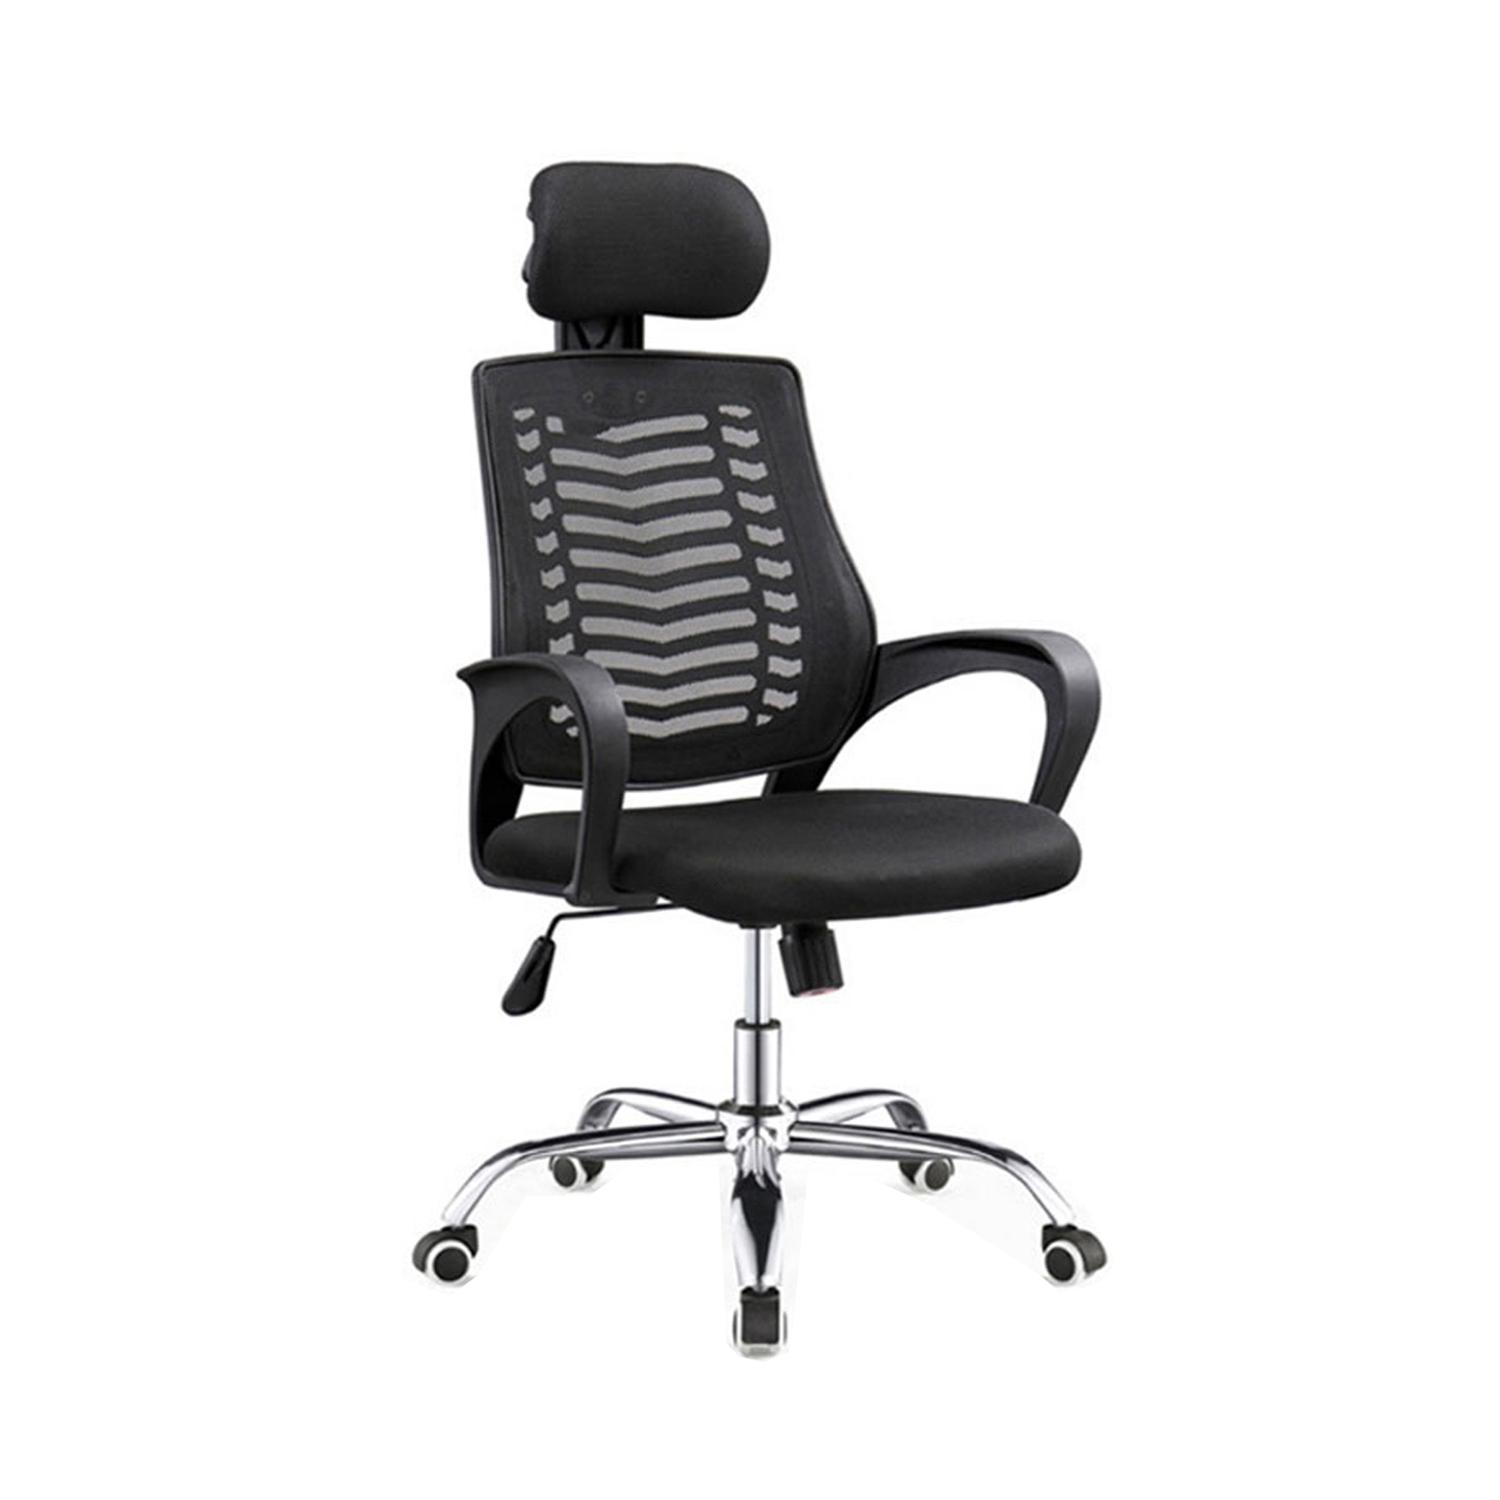 LIVING MALL_Hanna Office Chair in Black_High Back Office Chair_FREE DELIVERY